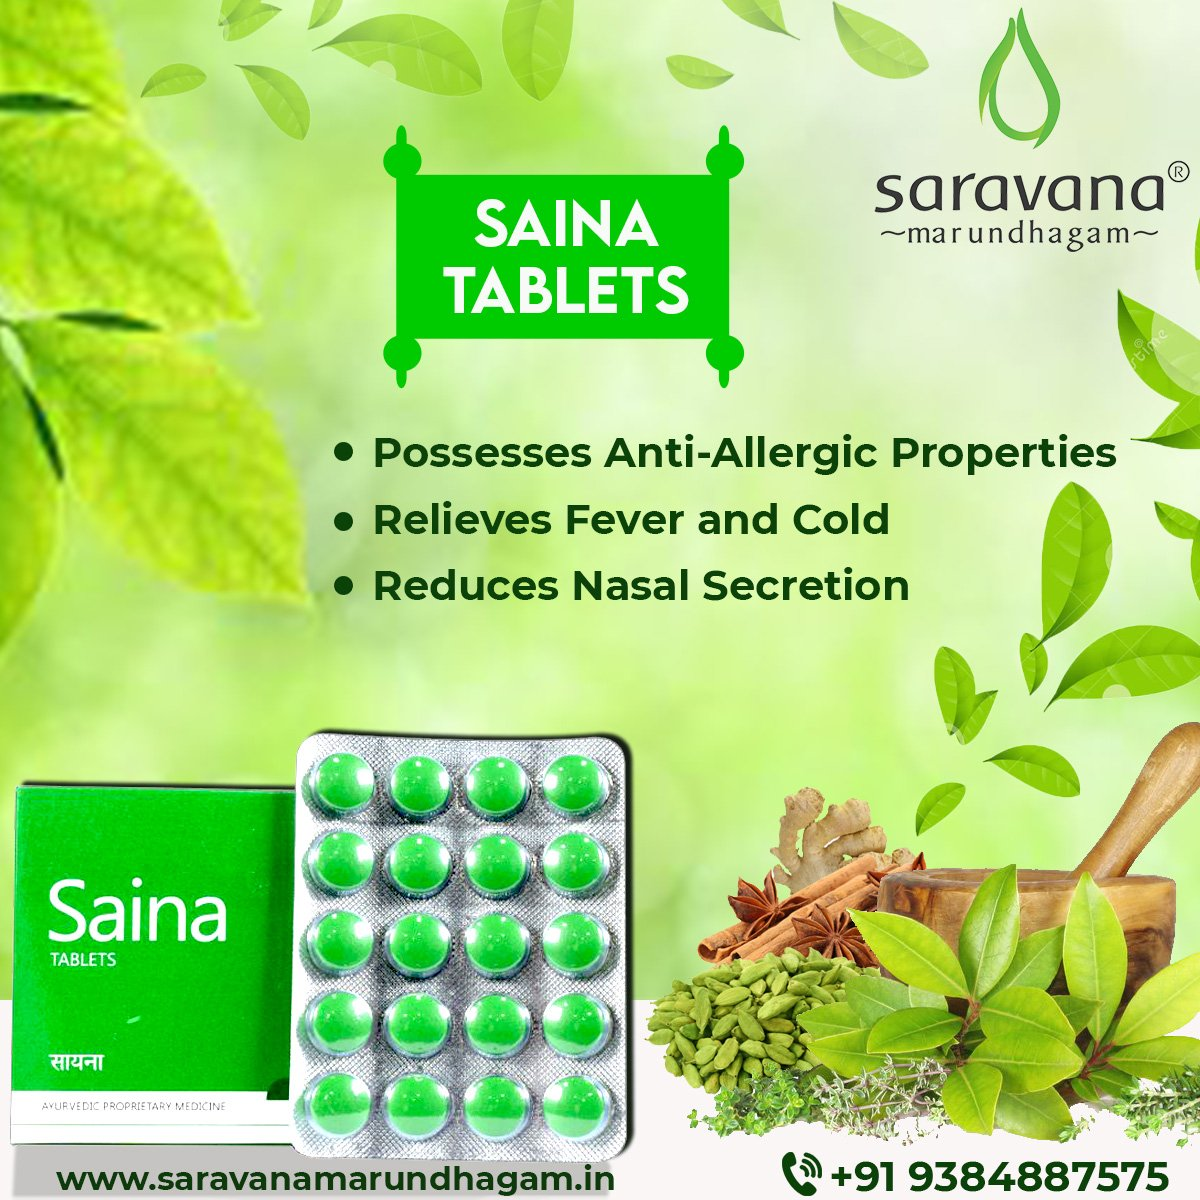 This Winter, Get the strength to Fight Cold and Fever with Saina an Ayurvedic remedy for Cold and Flu. For orders call - 9384887575 or Visit -  #saina #tuesdaymotivations #cough #cold #flu #herbalifenutrition #ayurvedaday #onlineshopping #Chennai